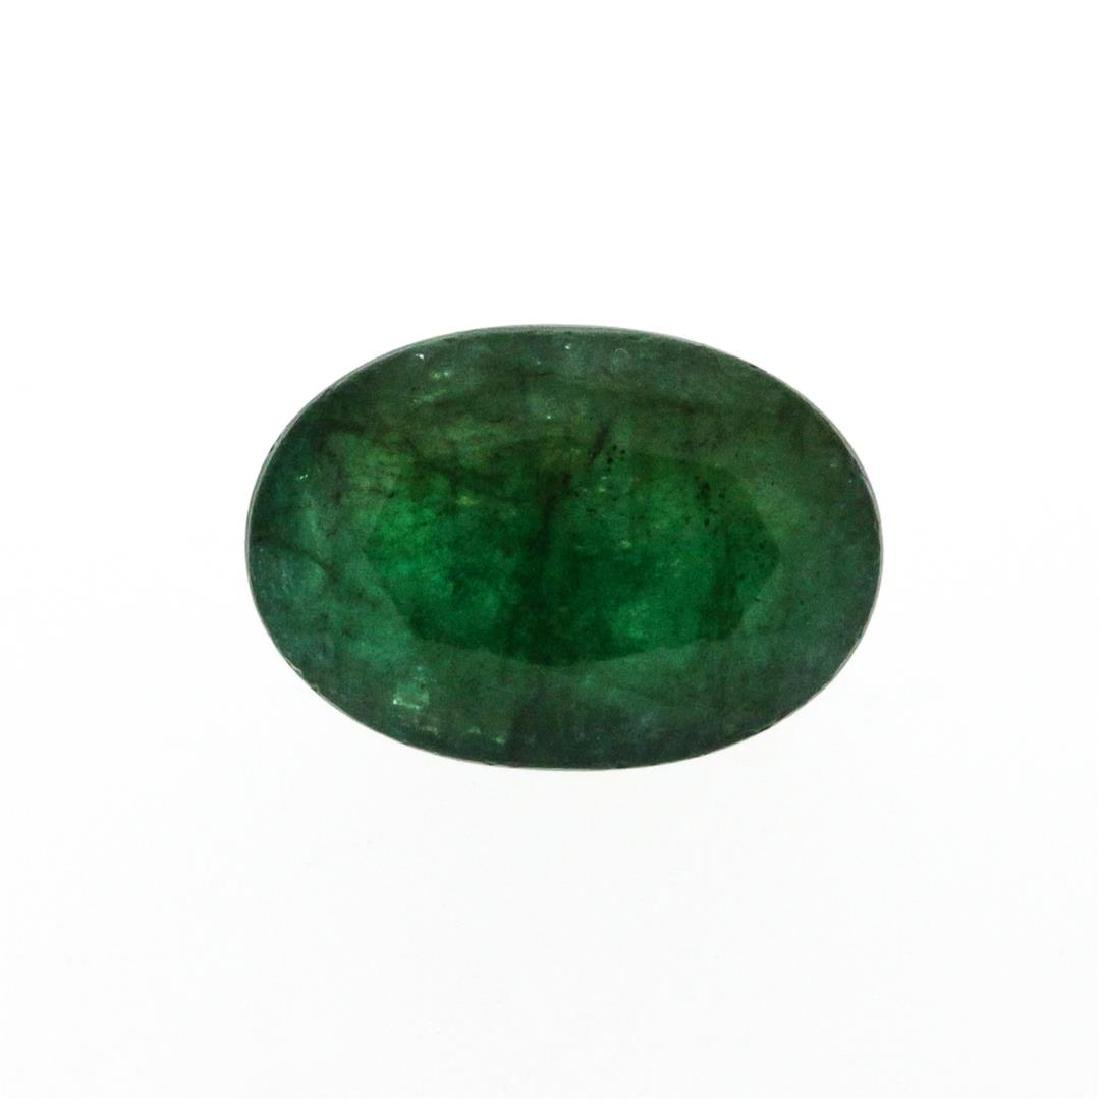 8.13 ct. One Oval Cut Natural Emerald